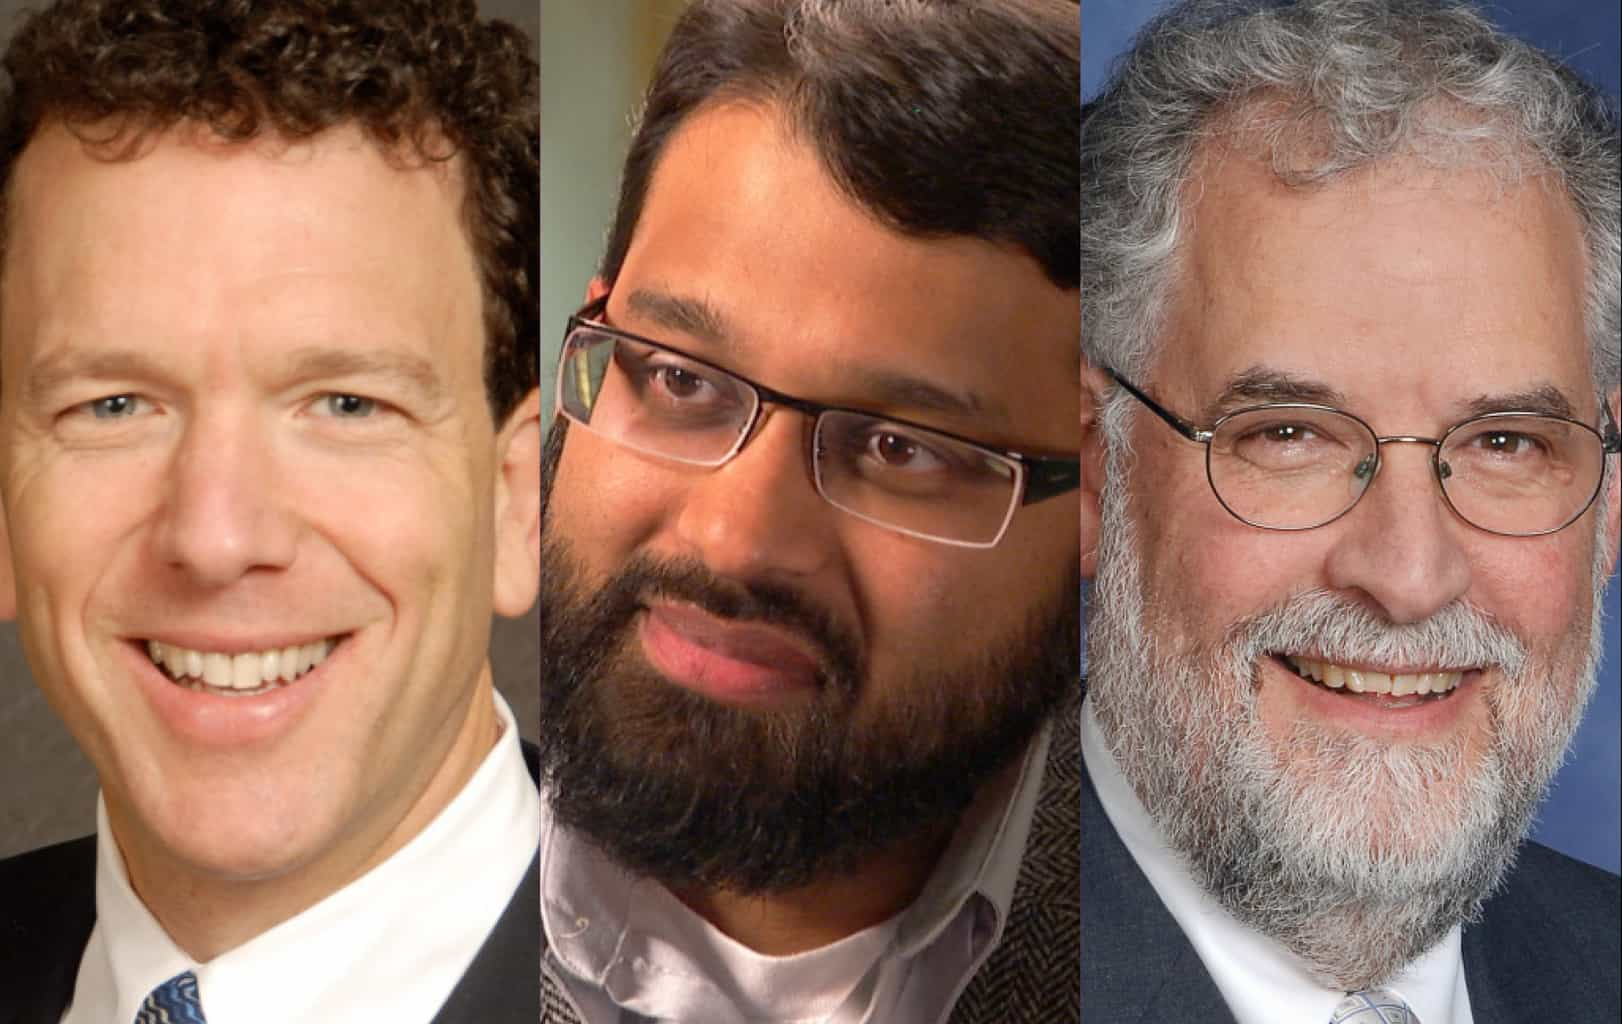 temple-israel-to-host-interfaith-panel-discussion